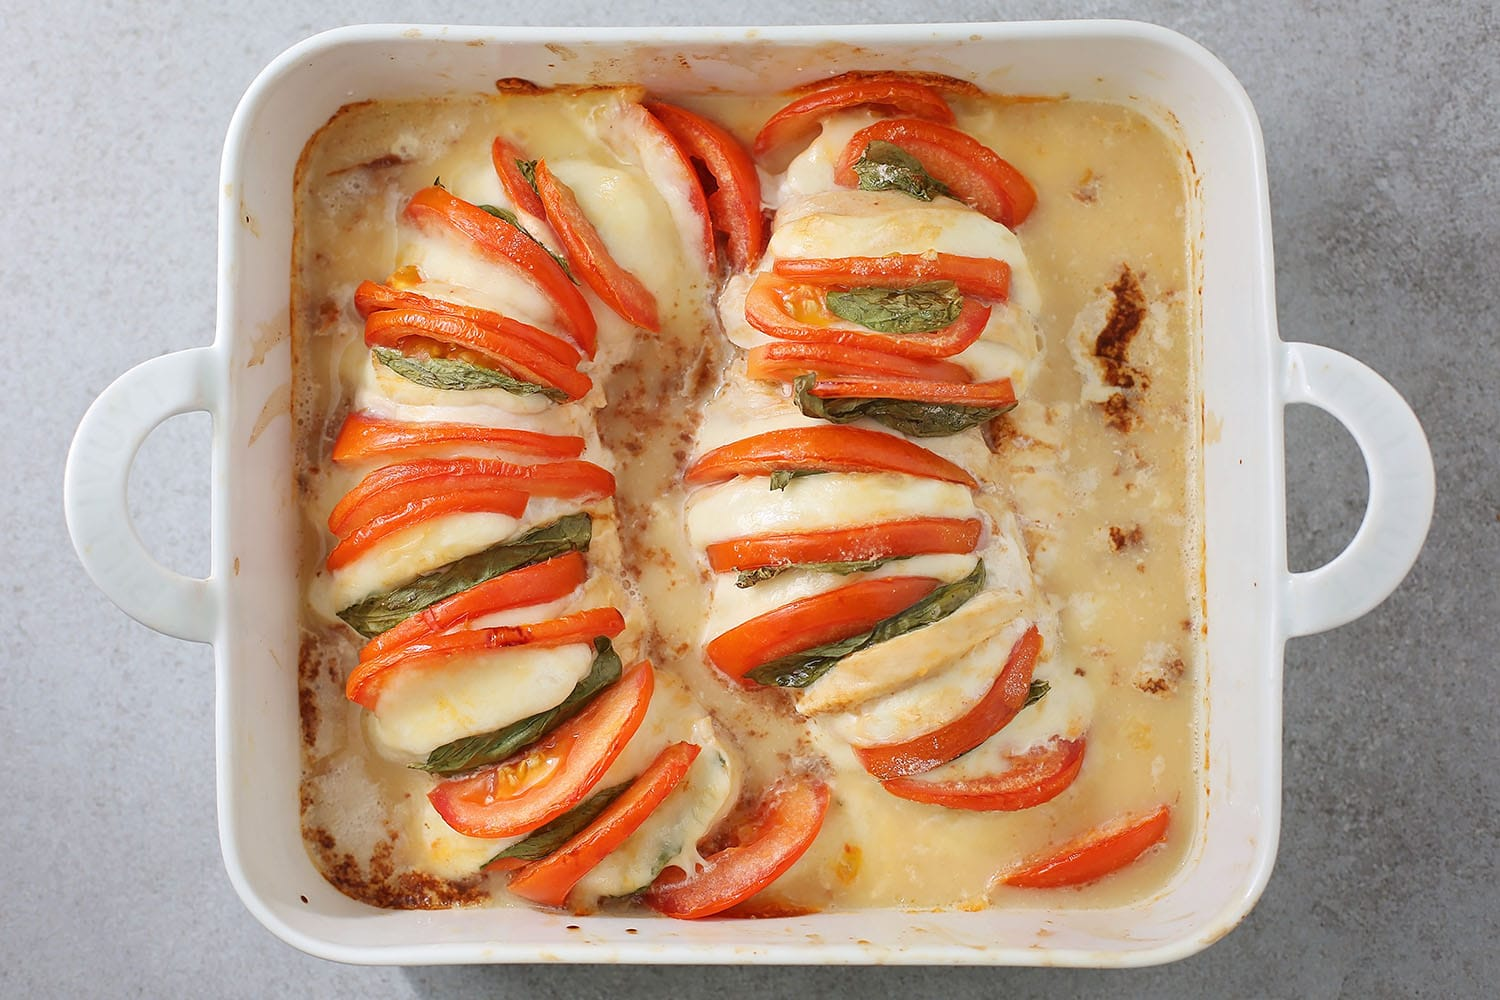 baked chicken with tomato slices and mozzarella